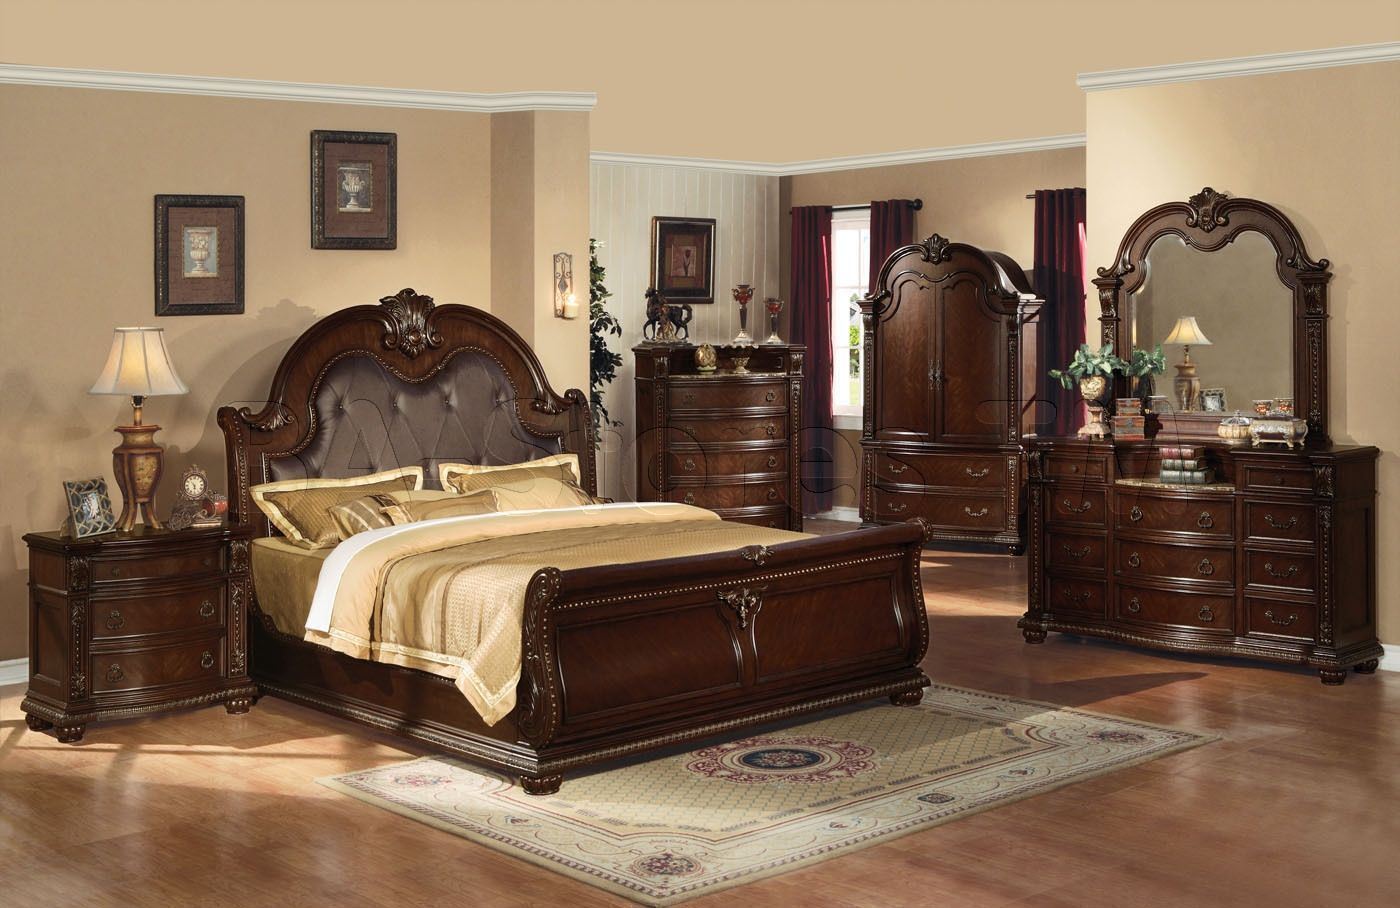 King Bedroom Set With Armoire Bedroomsetwitharmoire Kingbedroomsets King Bedroom Sets Wood Bedroom Sets Traditional Bedroom Furniture